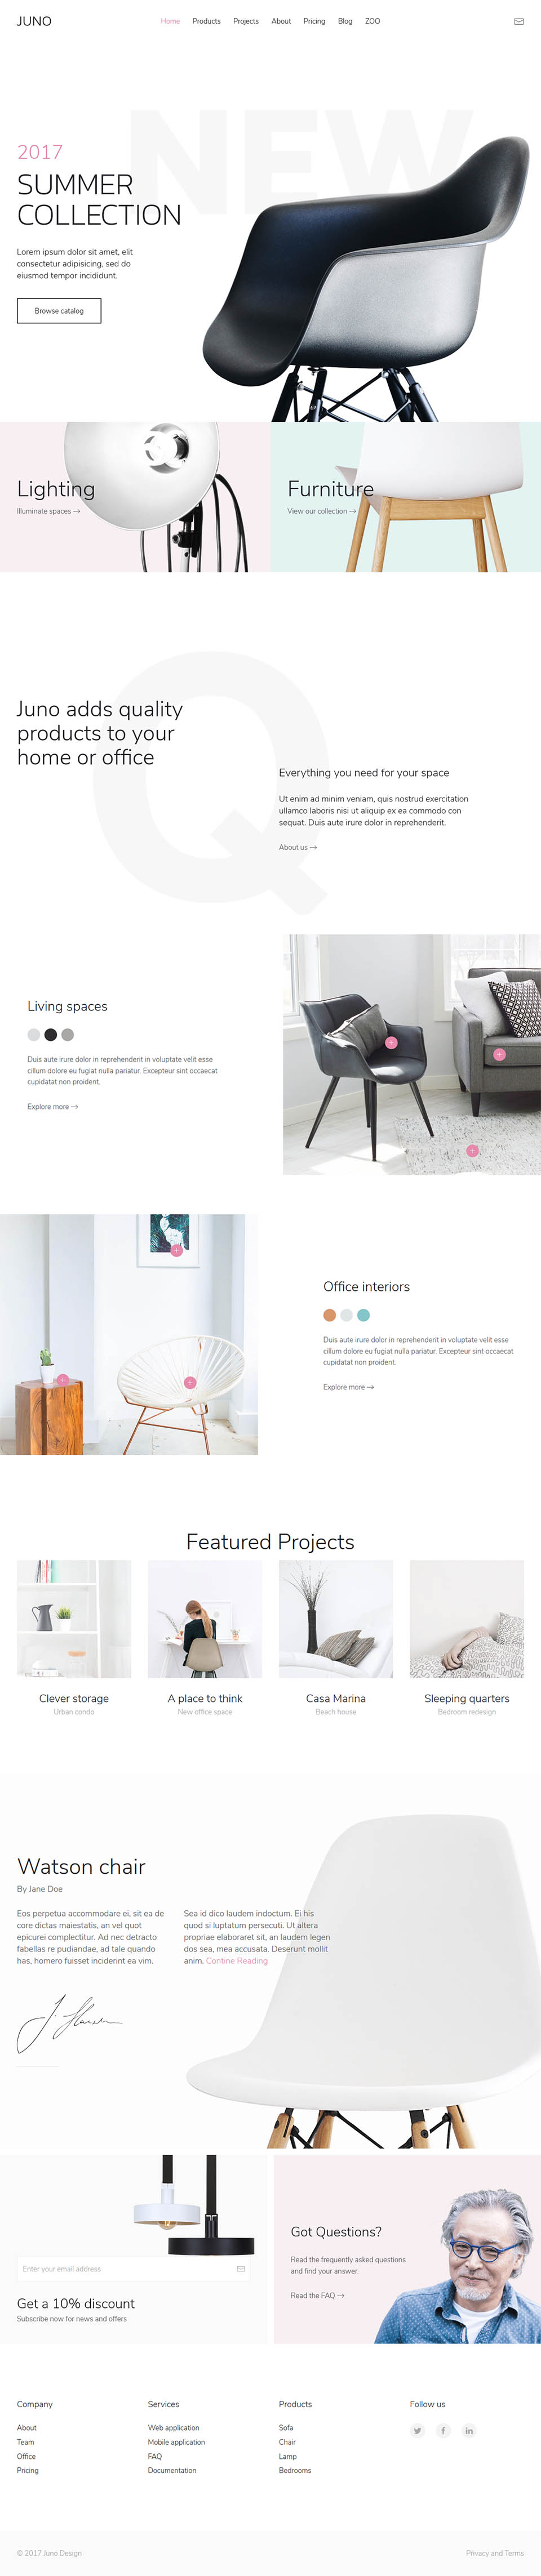 YOOtheme Juno v1.13.2 - the interior design studio template for Joomla